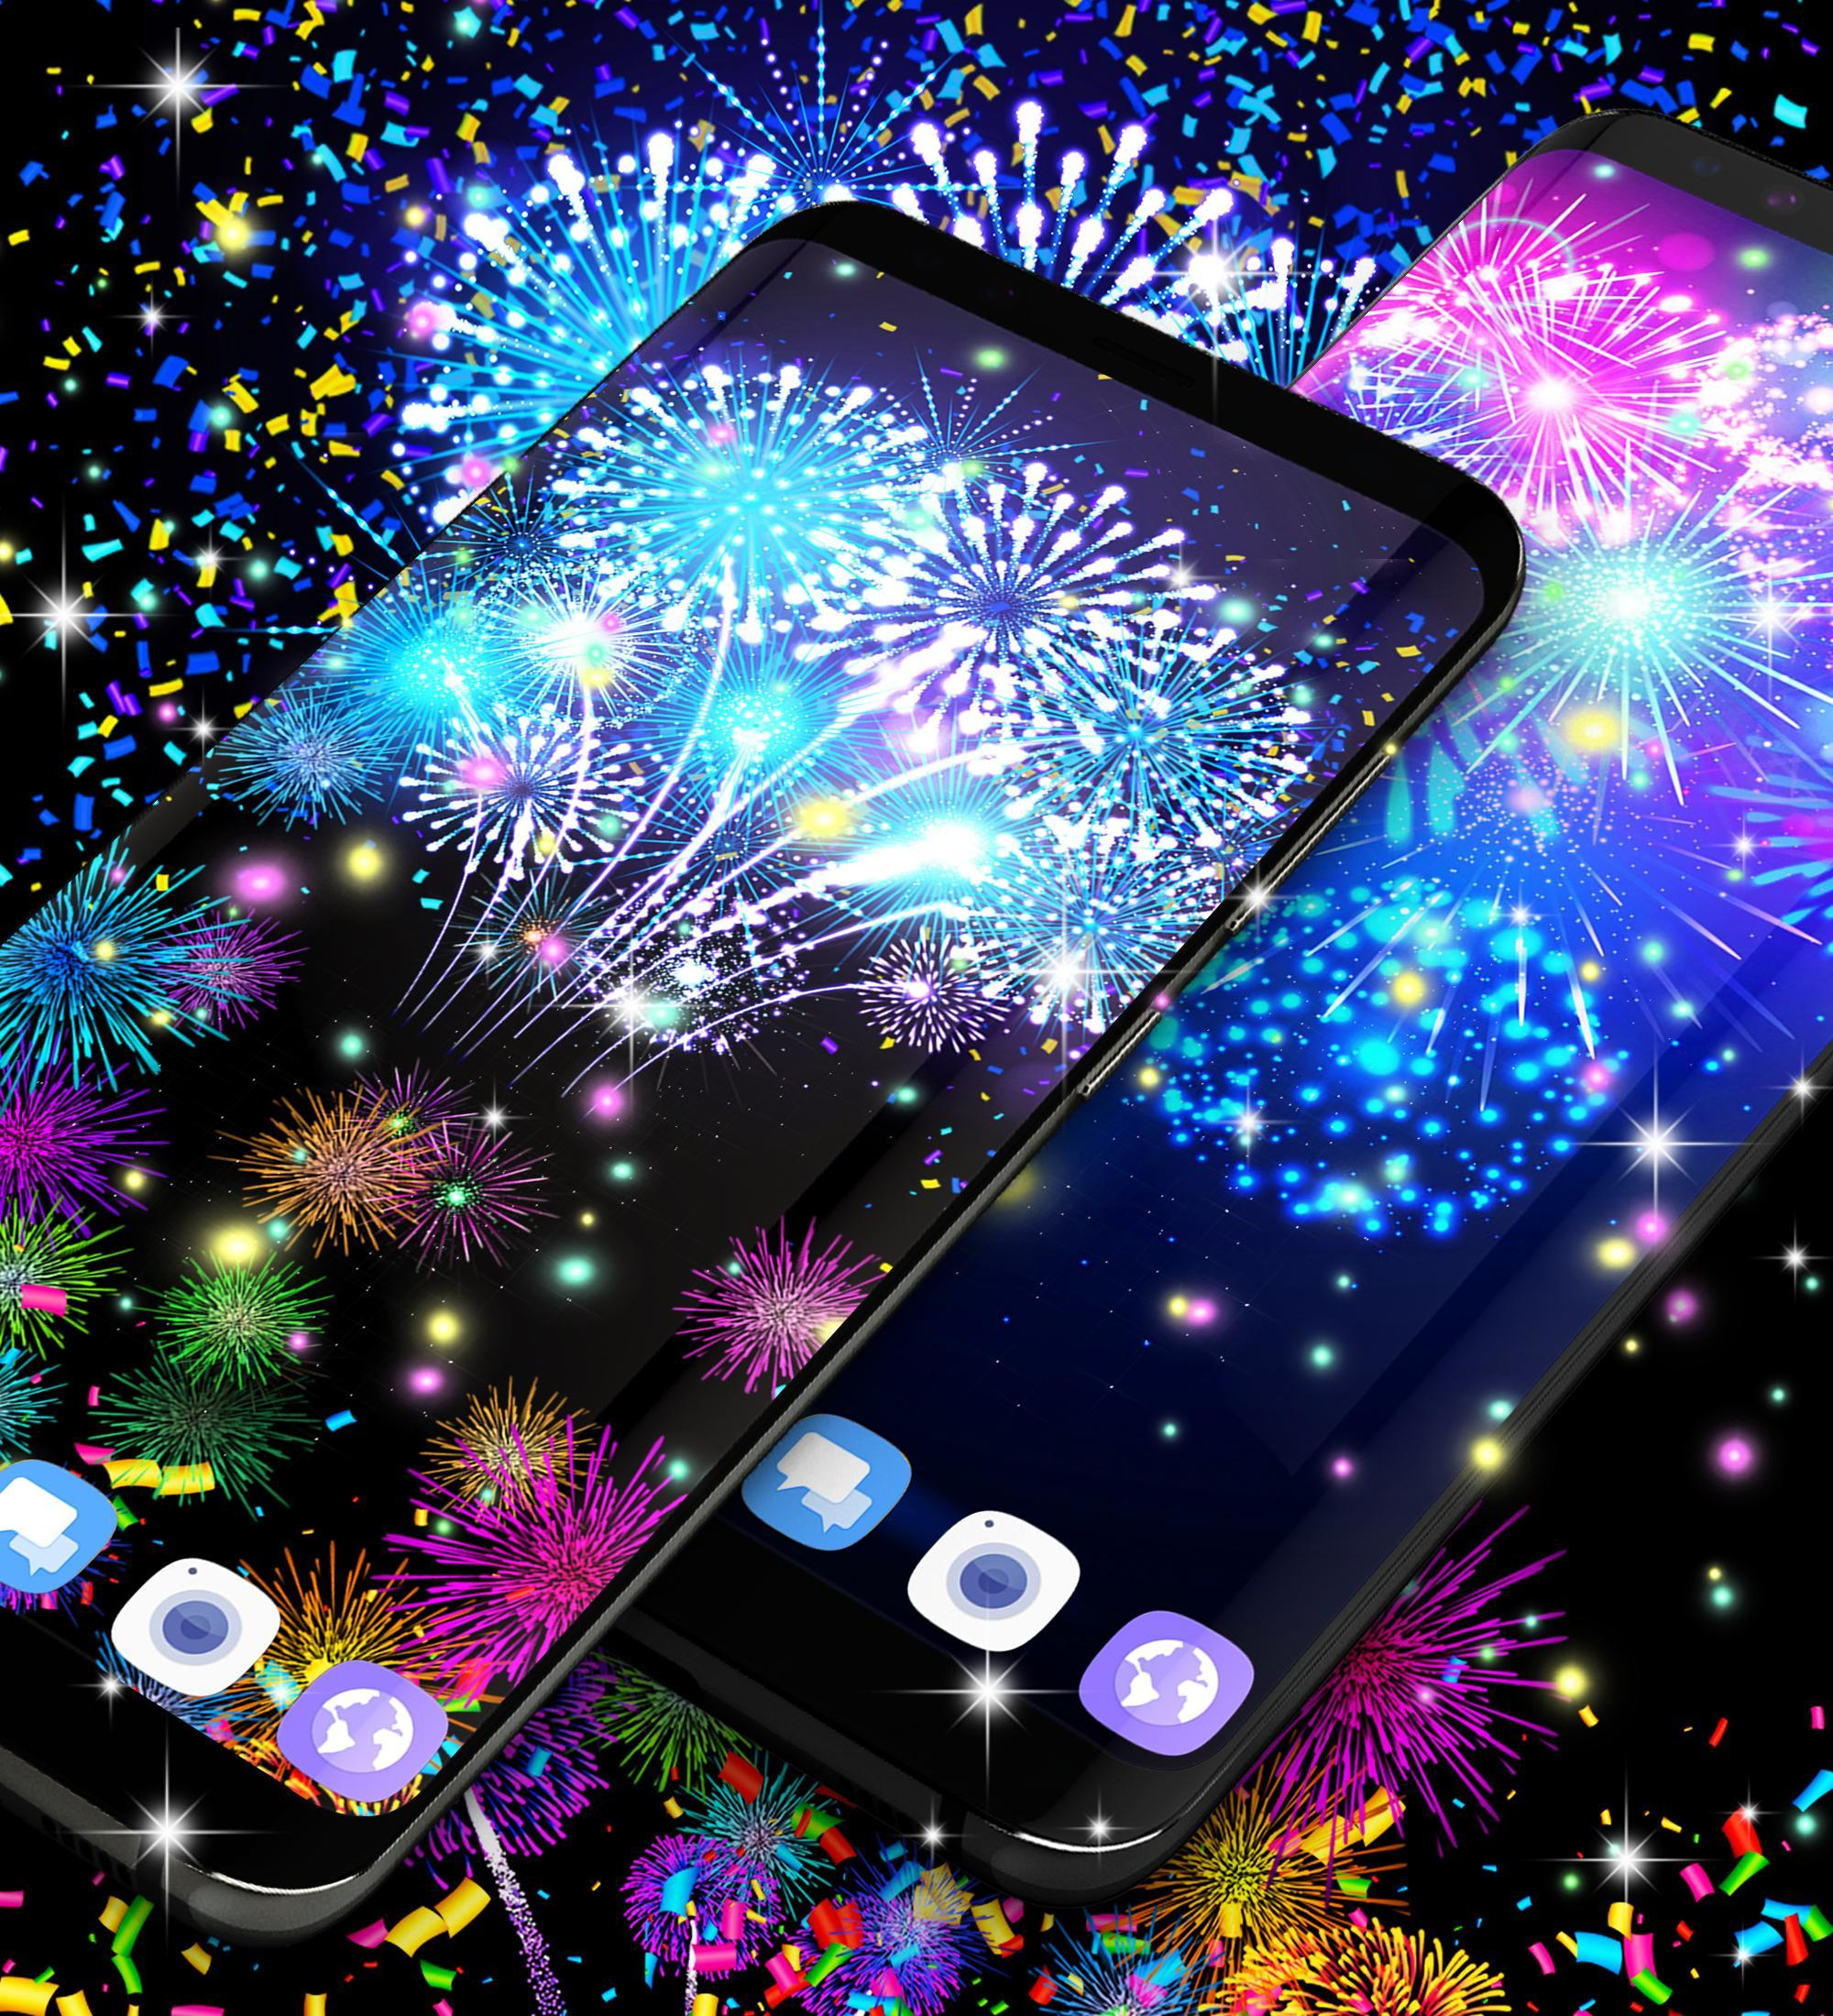 Happy new year 2020 live wallpaper for Android - APK Download